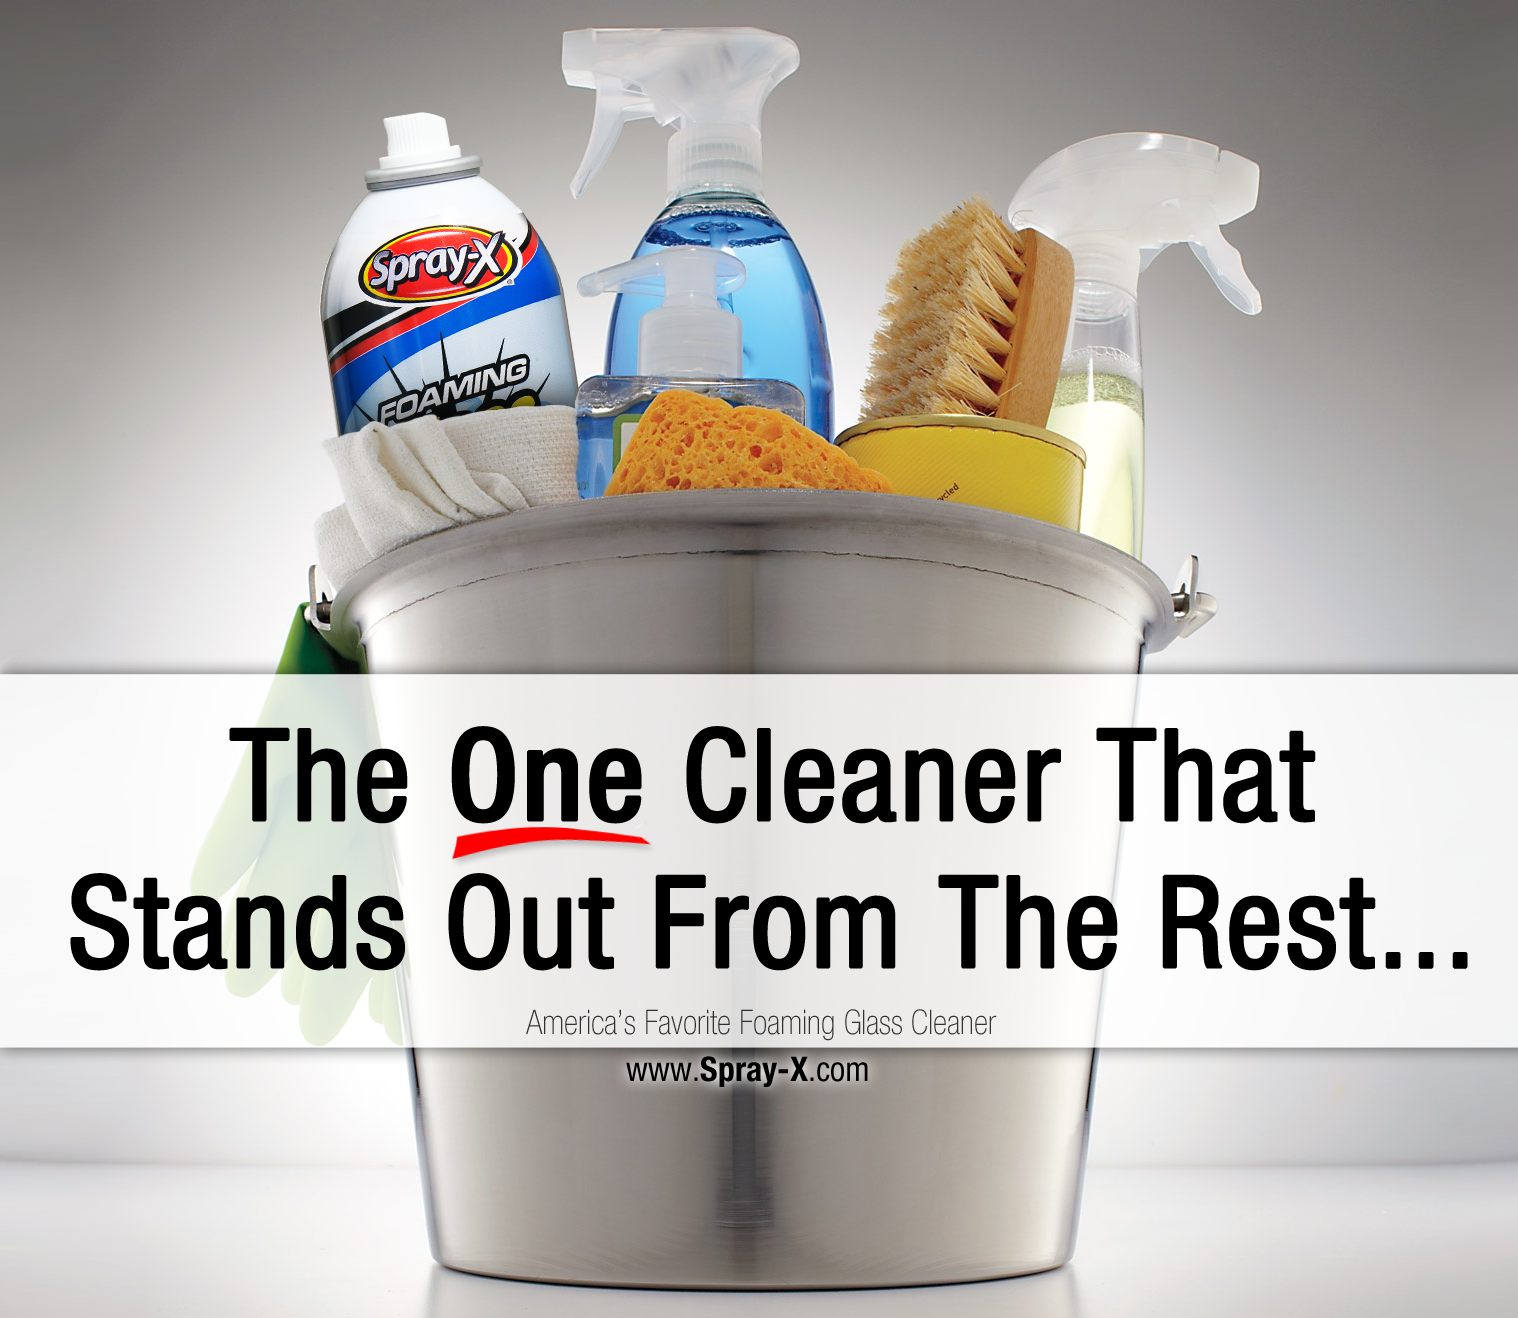 The-One-Cleaner-That-Stands-Out-From-The